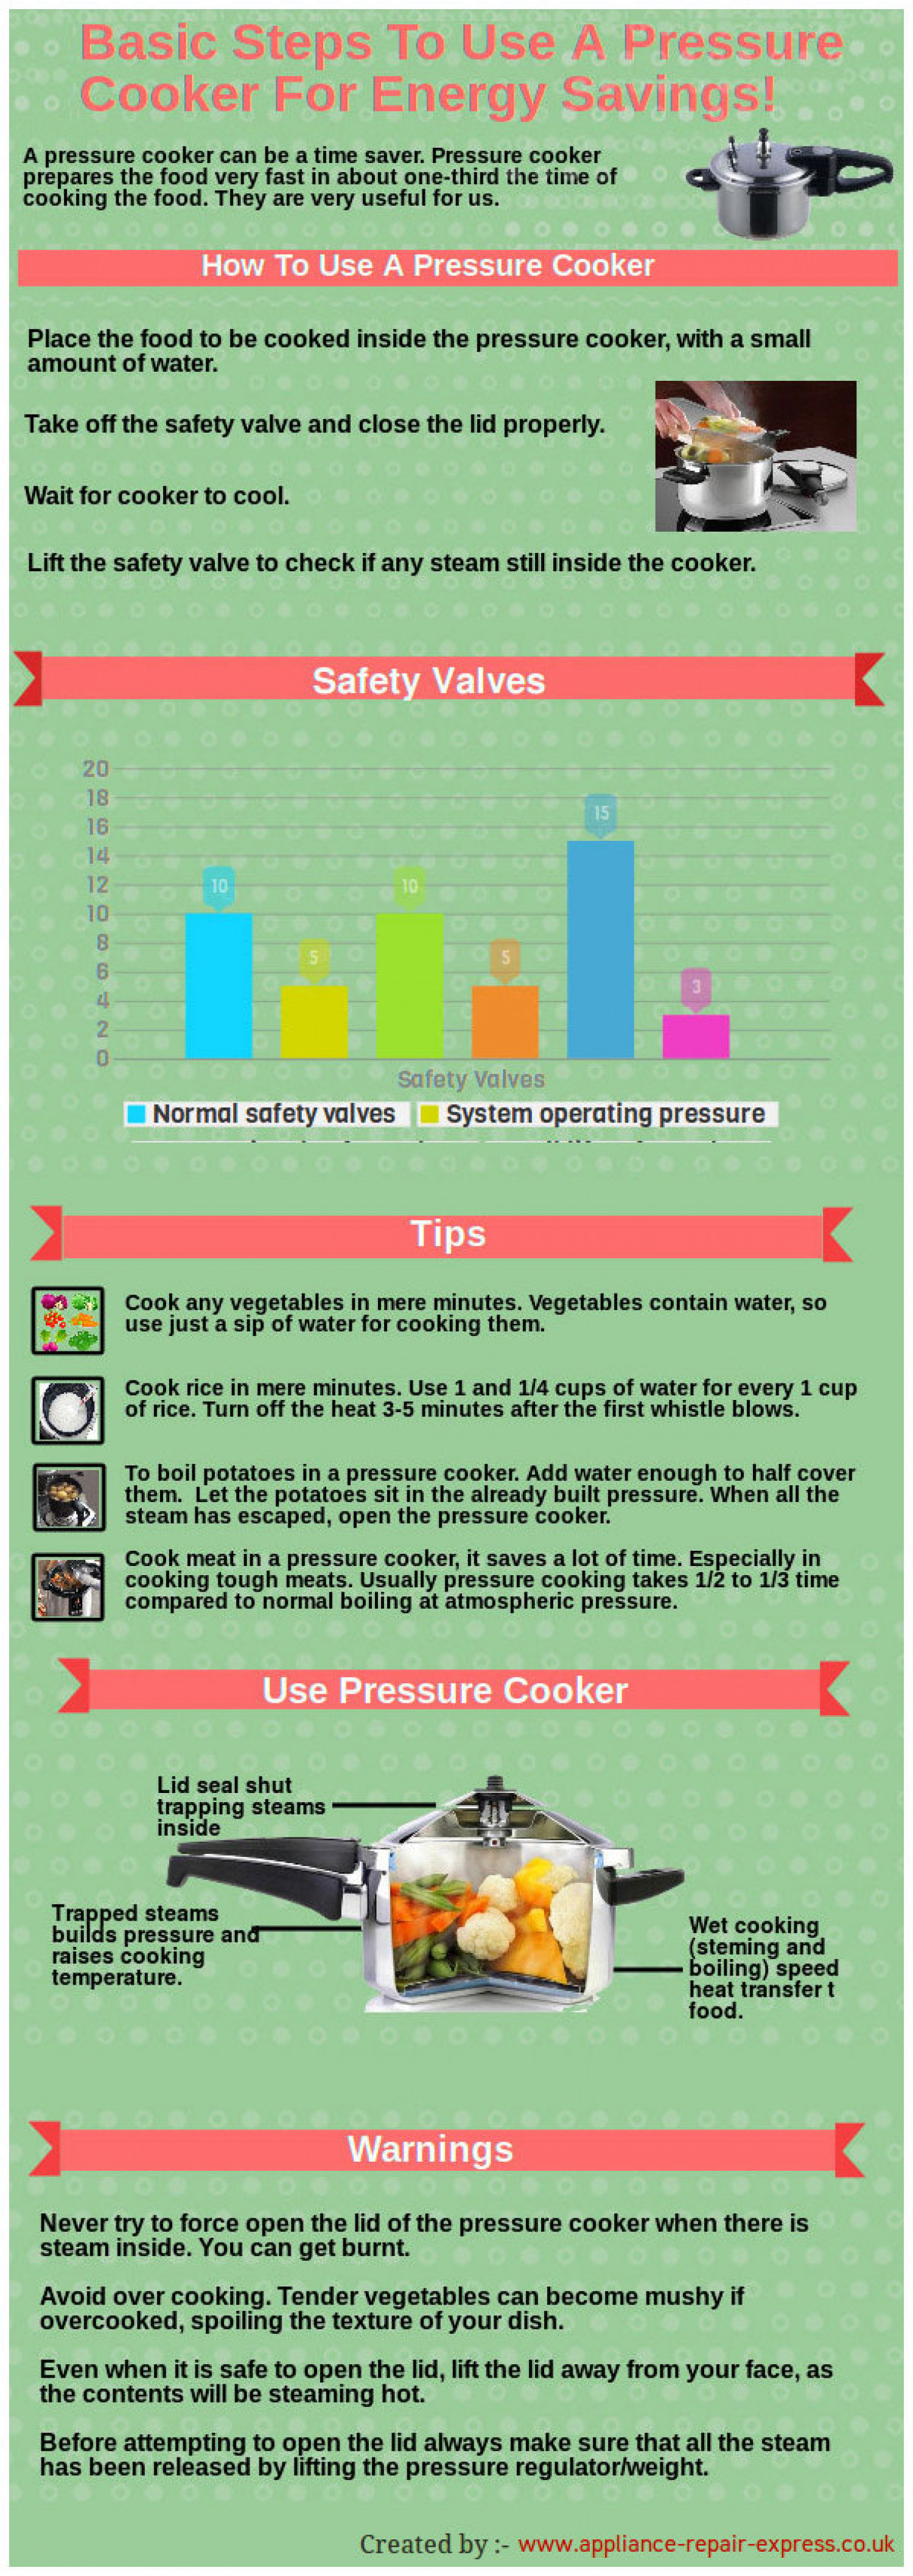 Basic Steps To Use A Pressure Cooker for Energy Savings Infographic